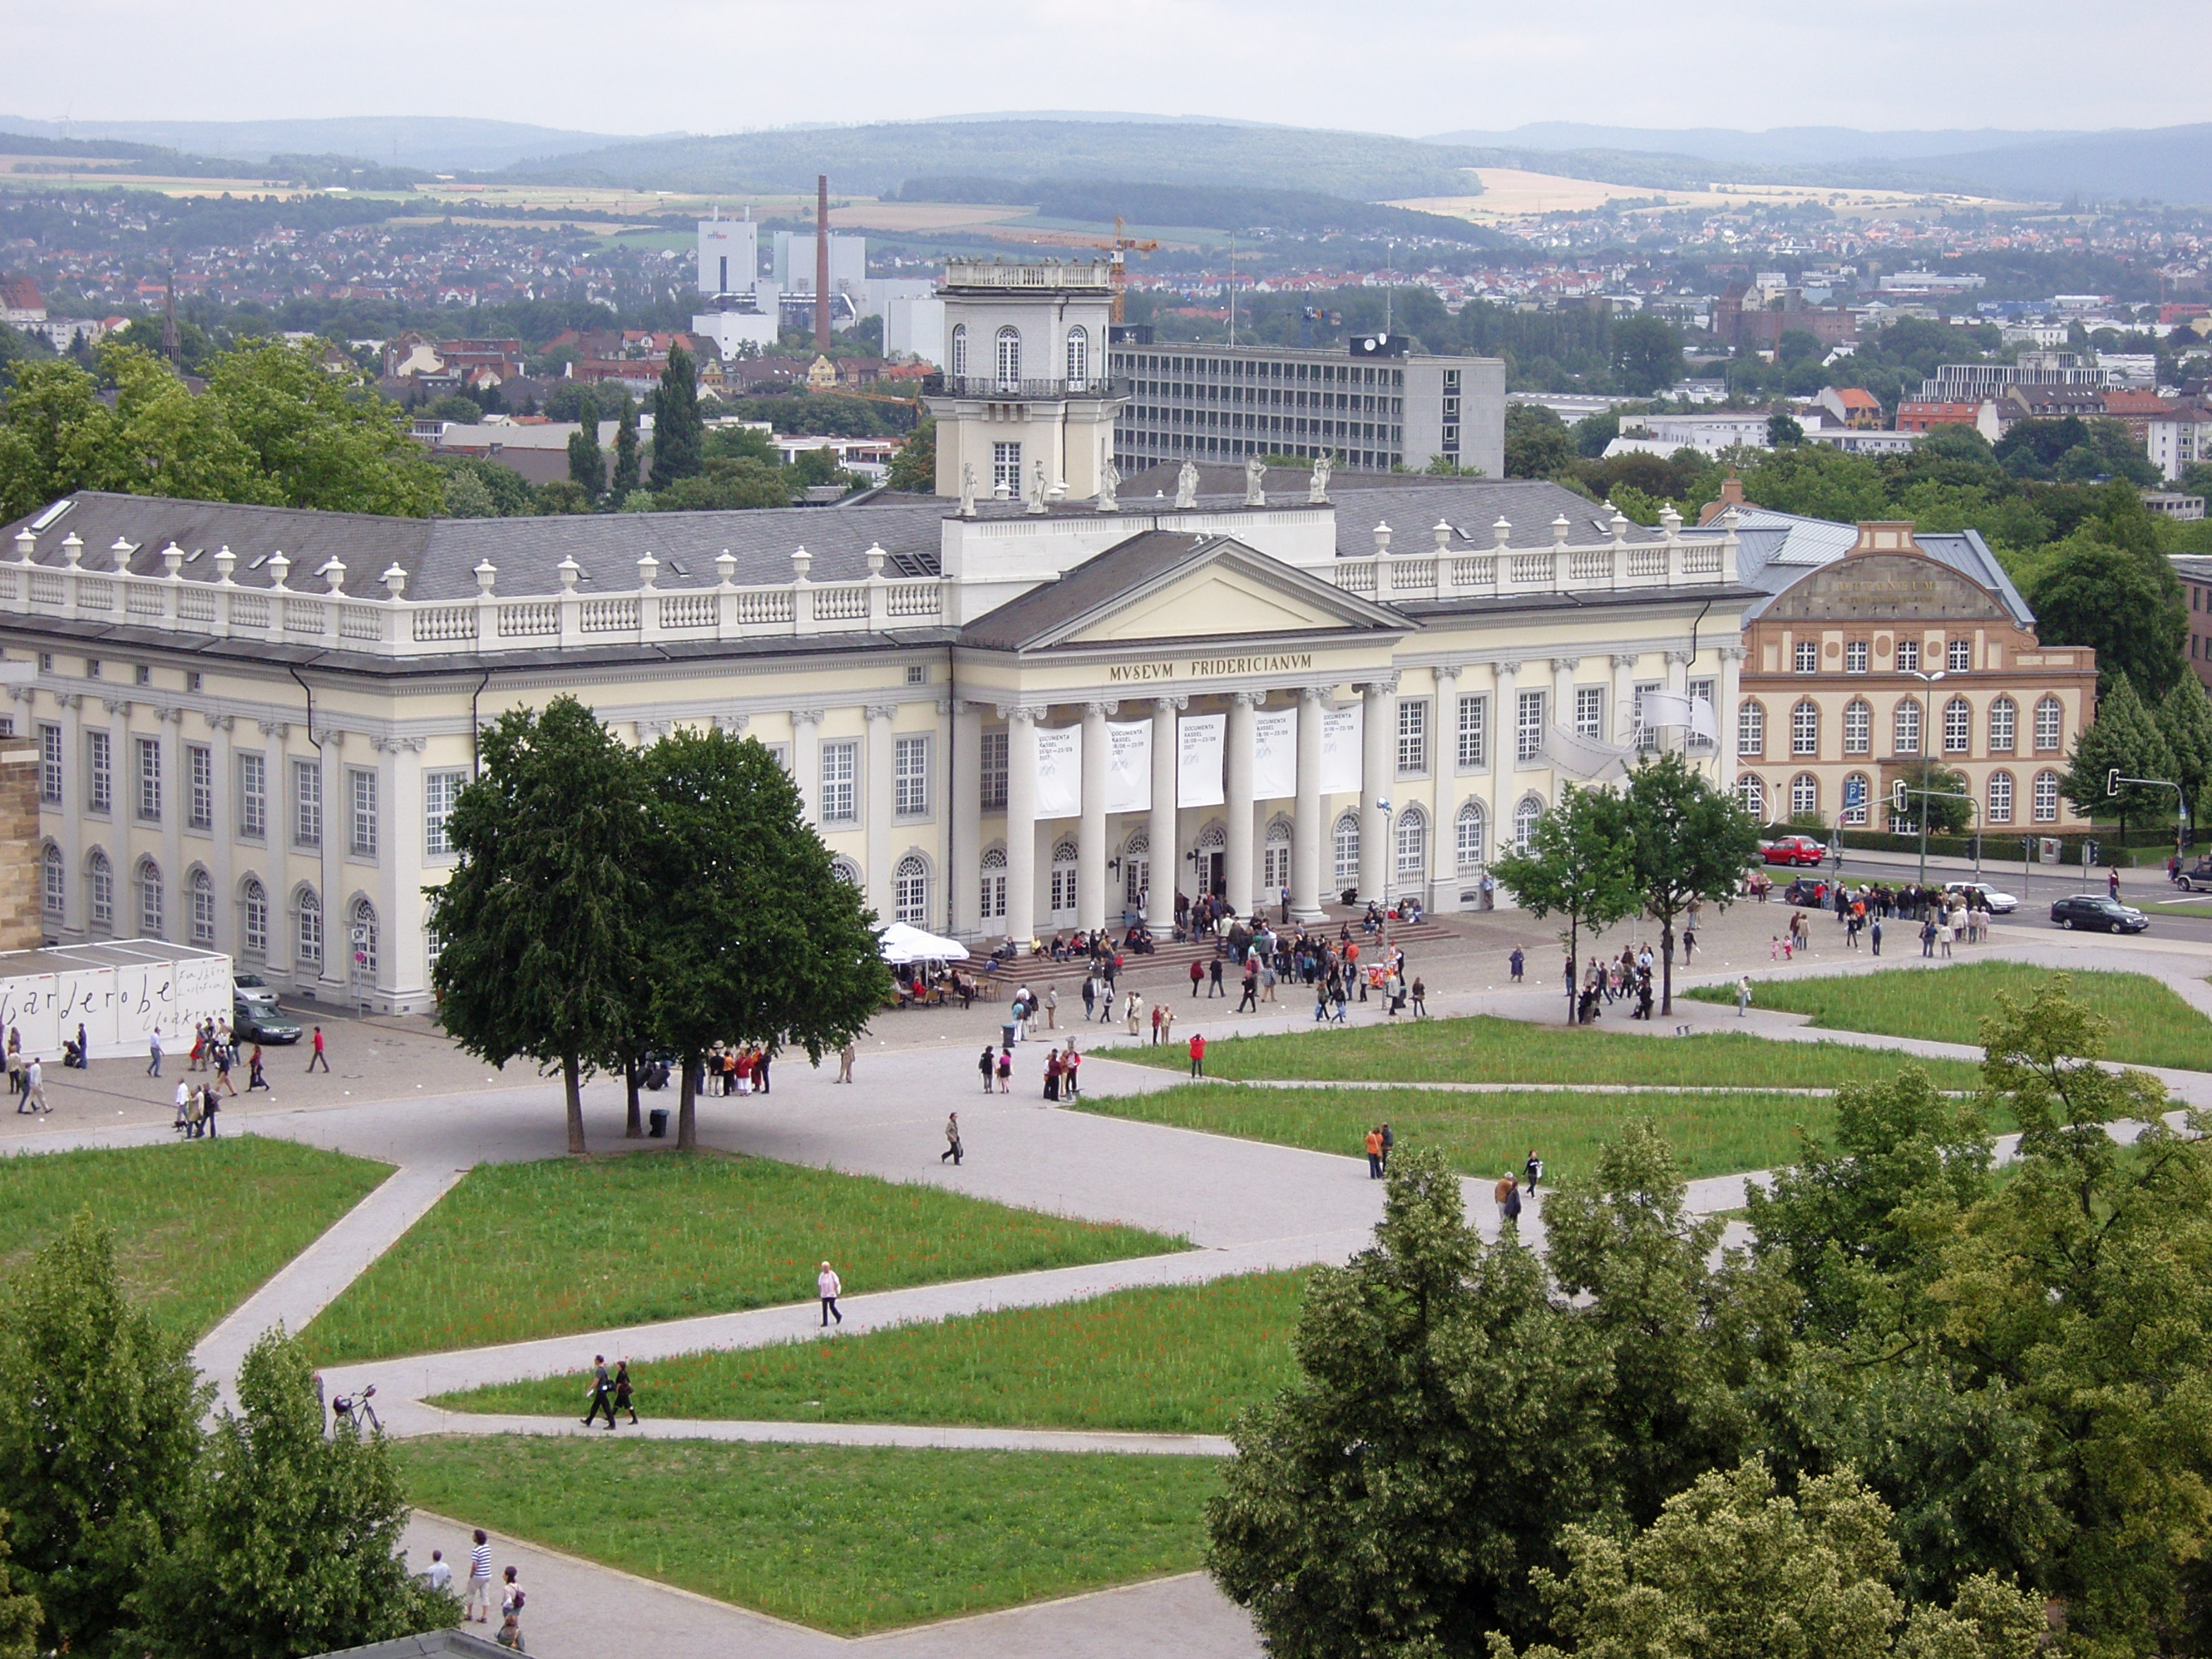 """Fridericianum-d12"" by I, Carroy. Licensed under CC BY-SA 3.0 via Wikimedia Commons - https://commons.wikimedia.org/wiki/File:Fridericianum-d12.JPG#/media/File:Fridericianum-d12.JPG"